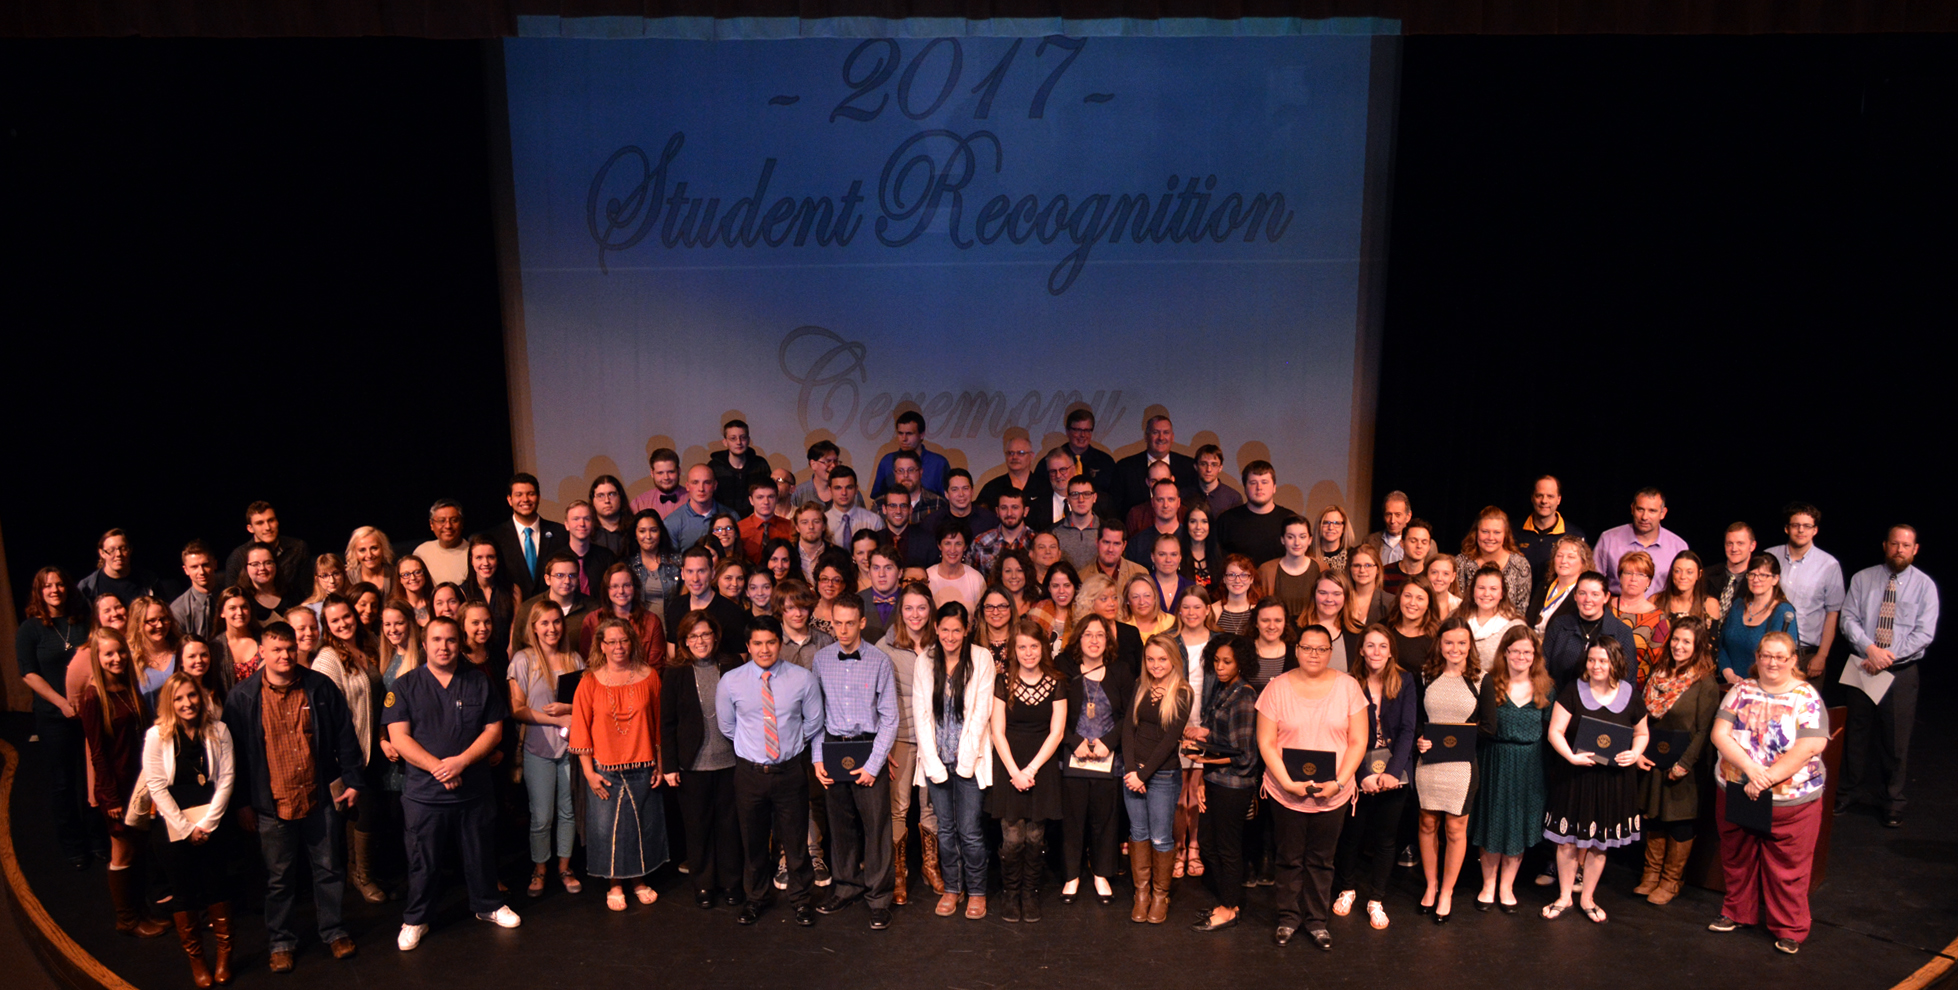 SC4 honors 166 students at Student Recognition Ceremony